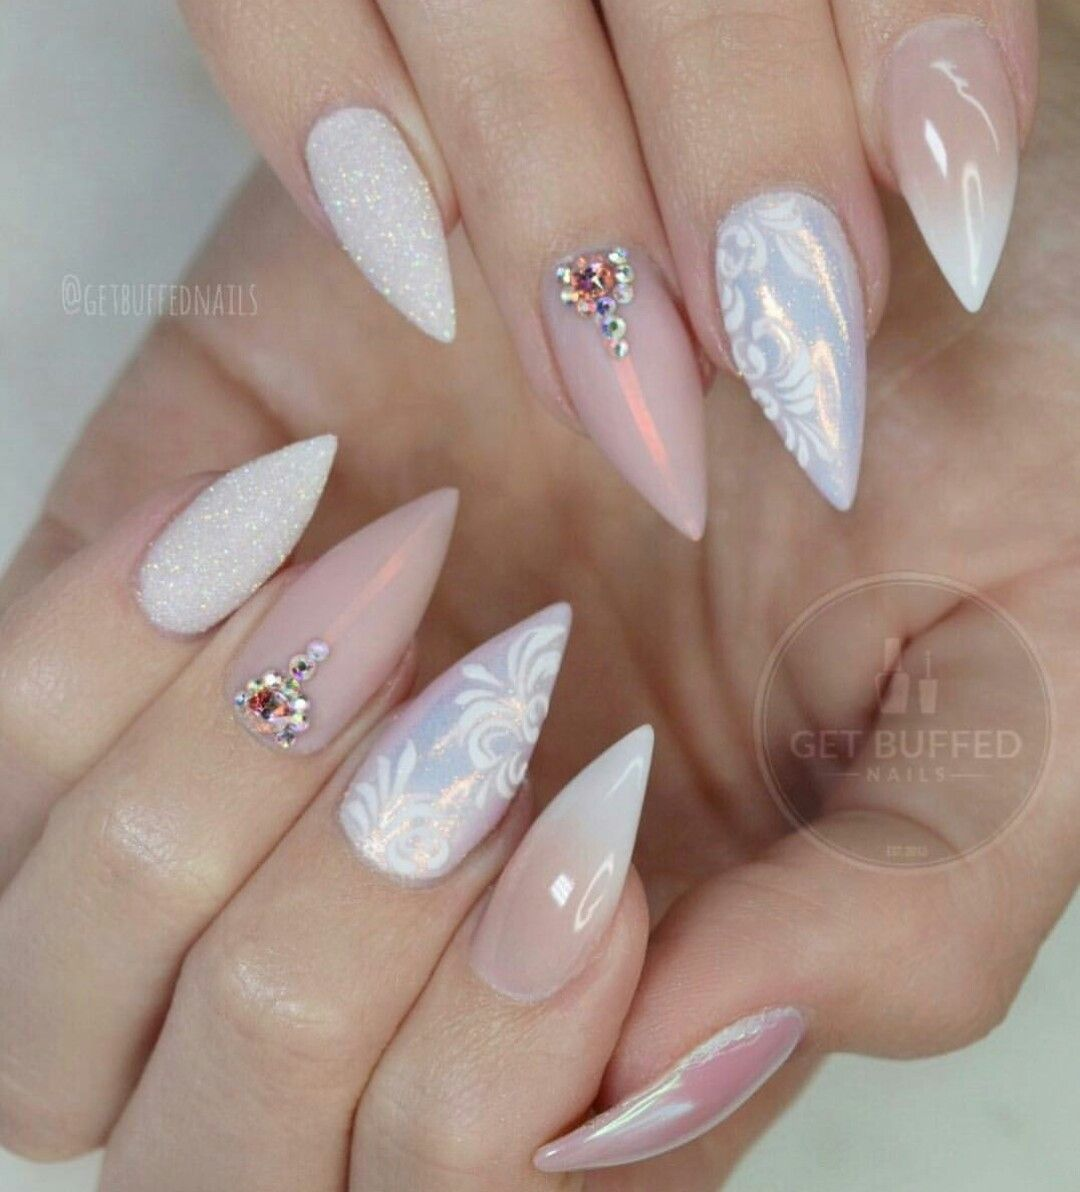 Pin By Zdenka Koskova On Nails Gelove Nehty Nehty Ucesy